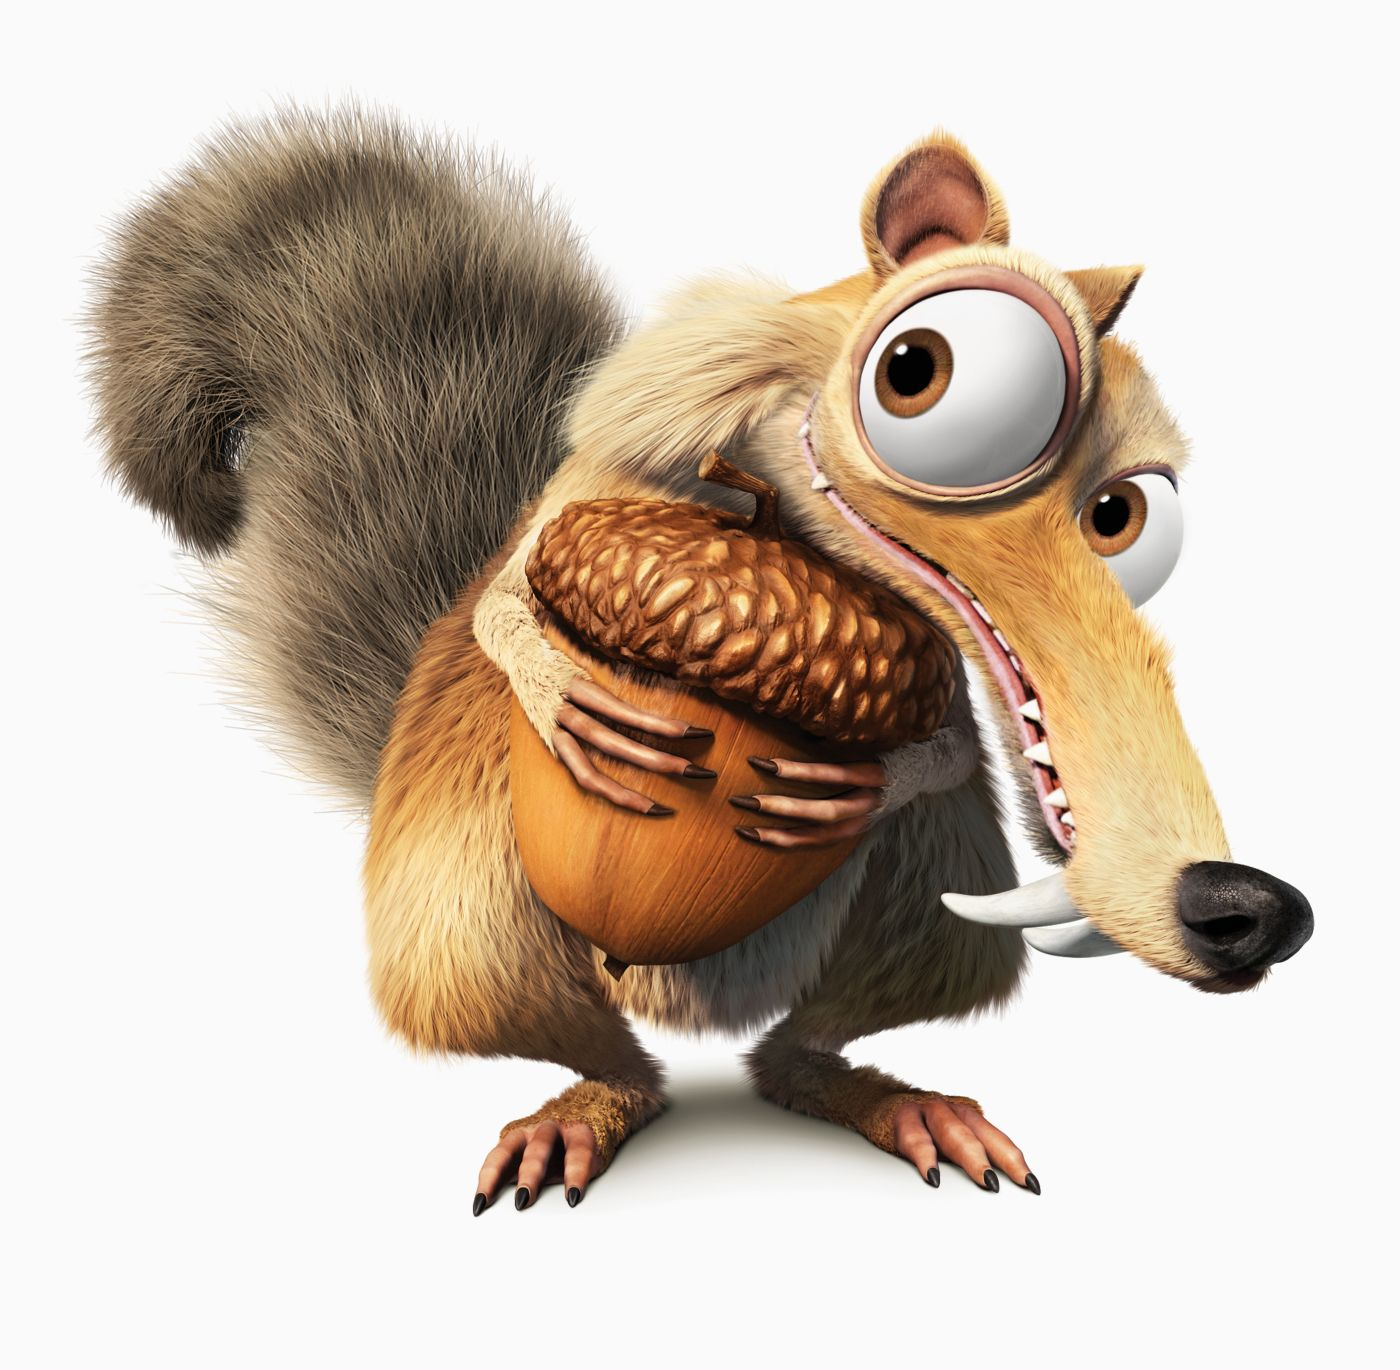 Ice Age, This man is a star; Seriously the best character of the movies